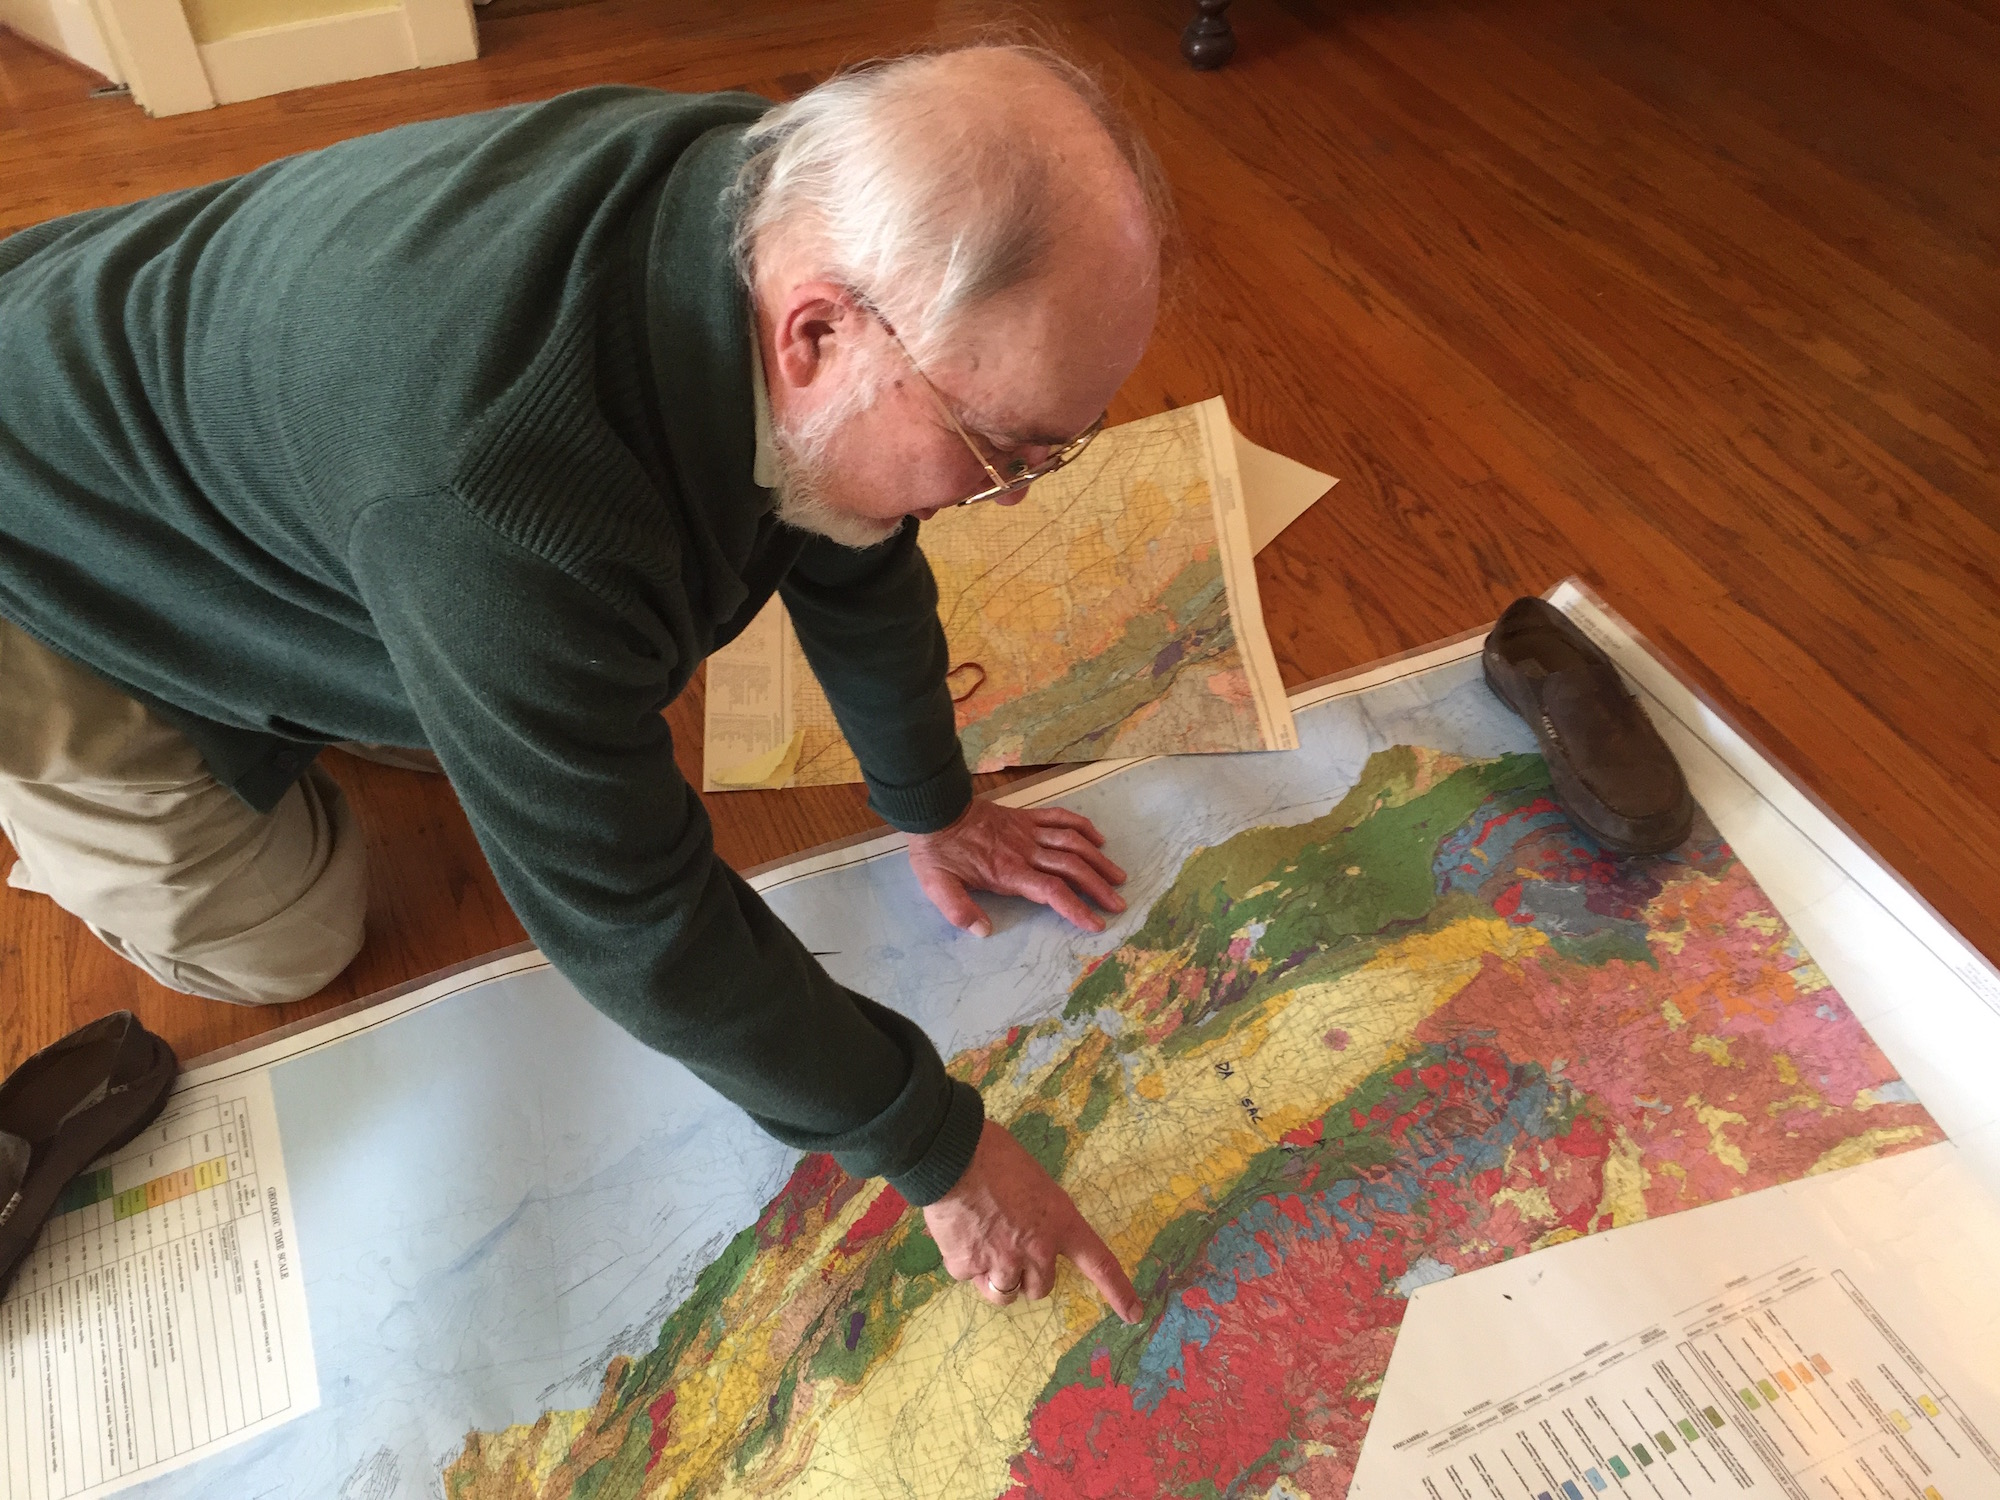 Photo: Moores with map on floor